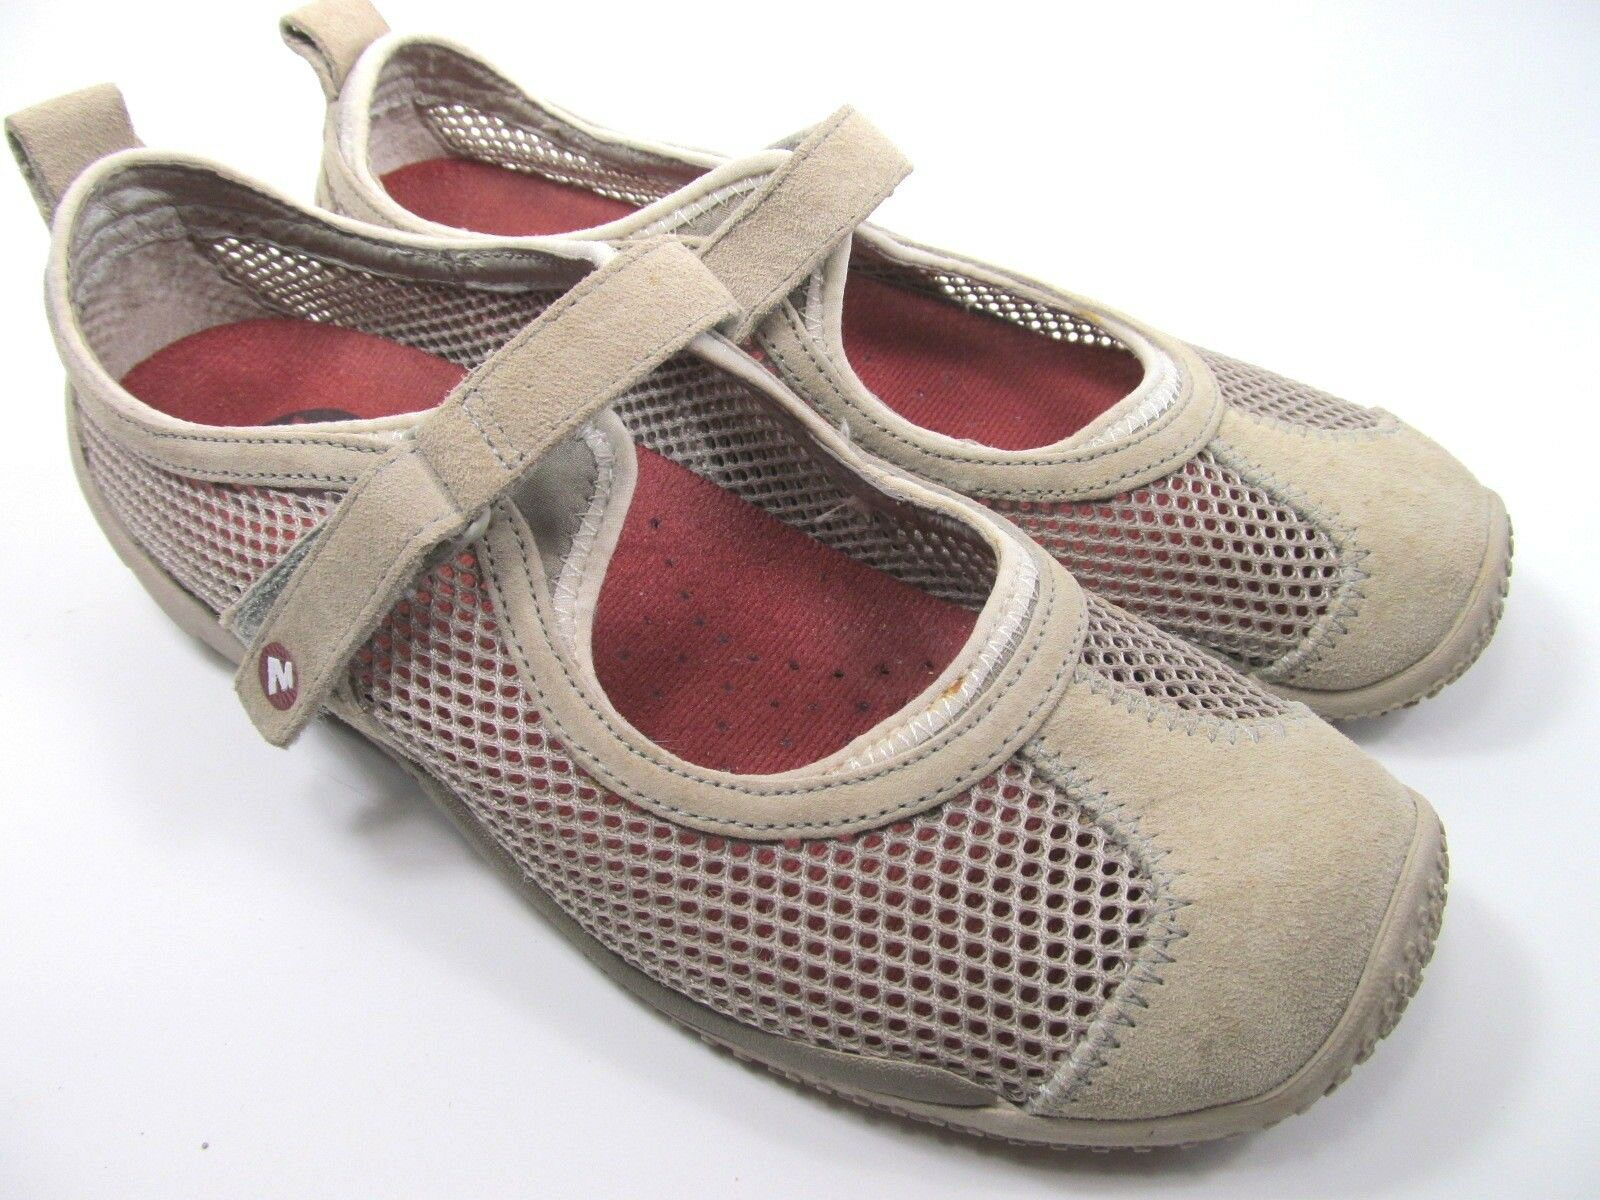 Merrell Taupe Womens Mesh Shoes Size 7.5 M Grey Suede Mary Jane Shoes